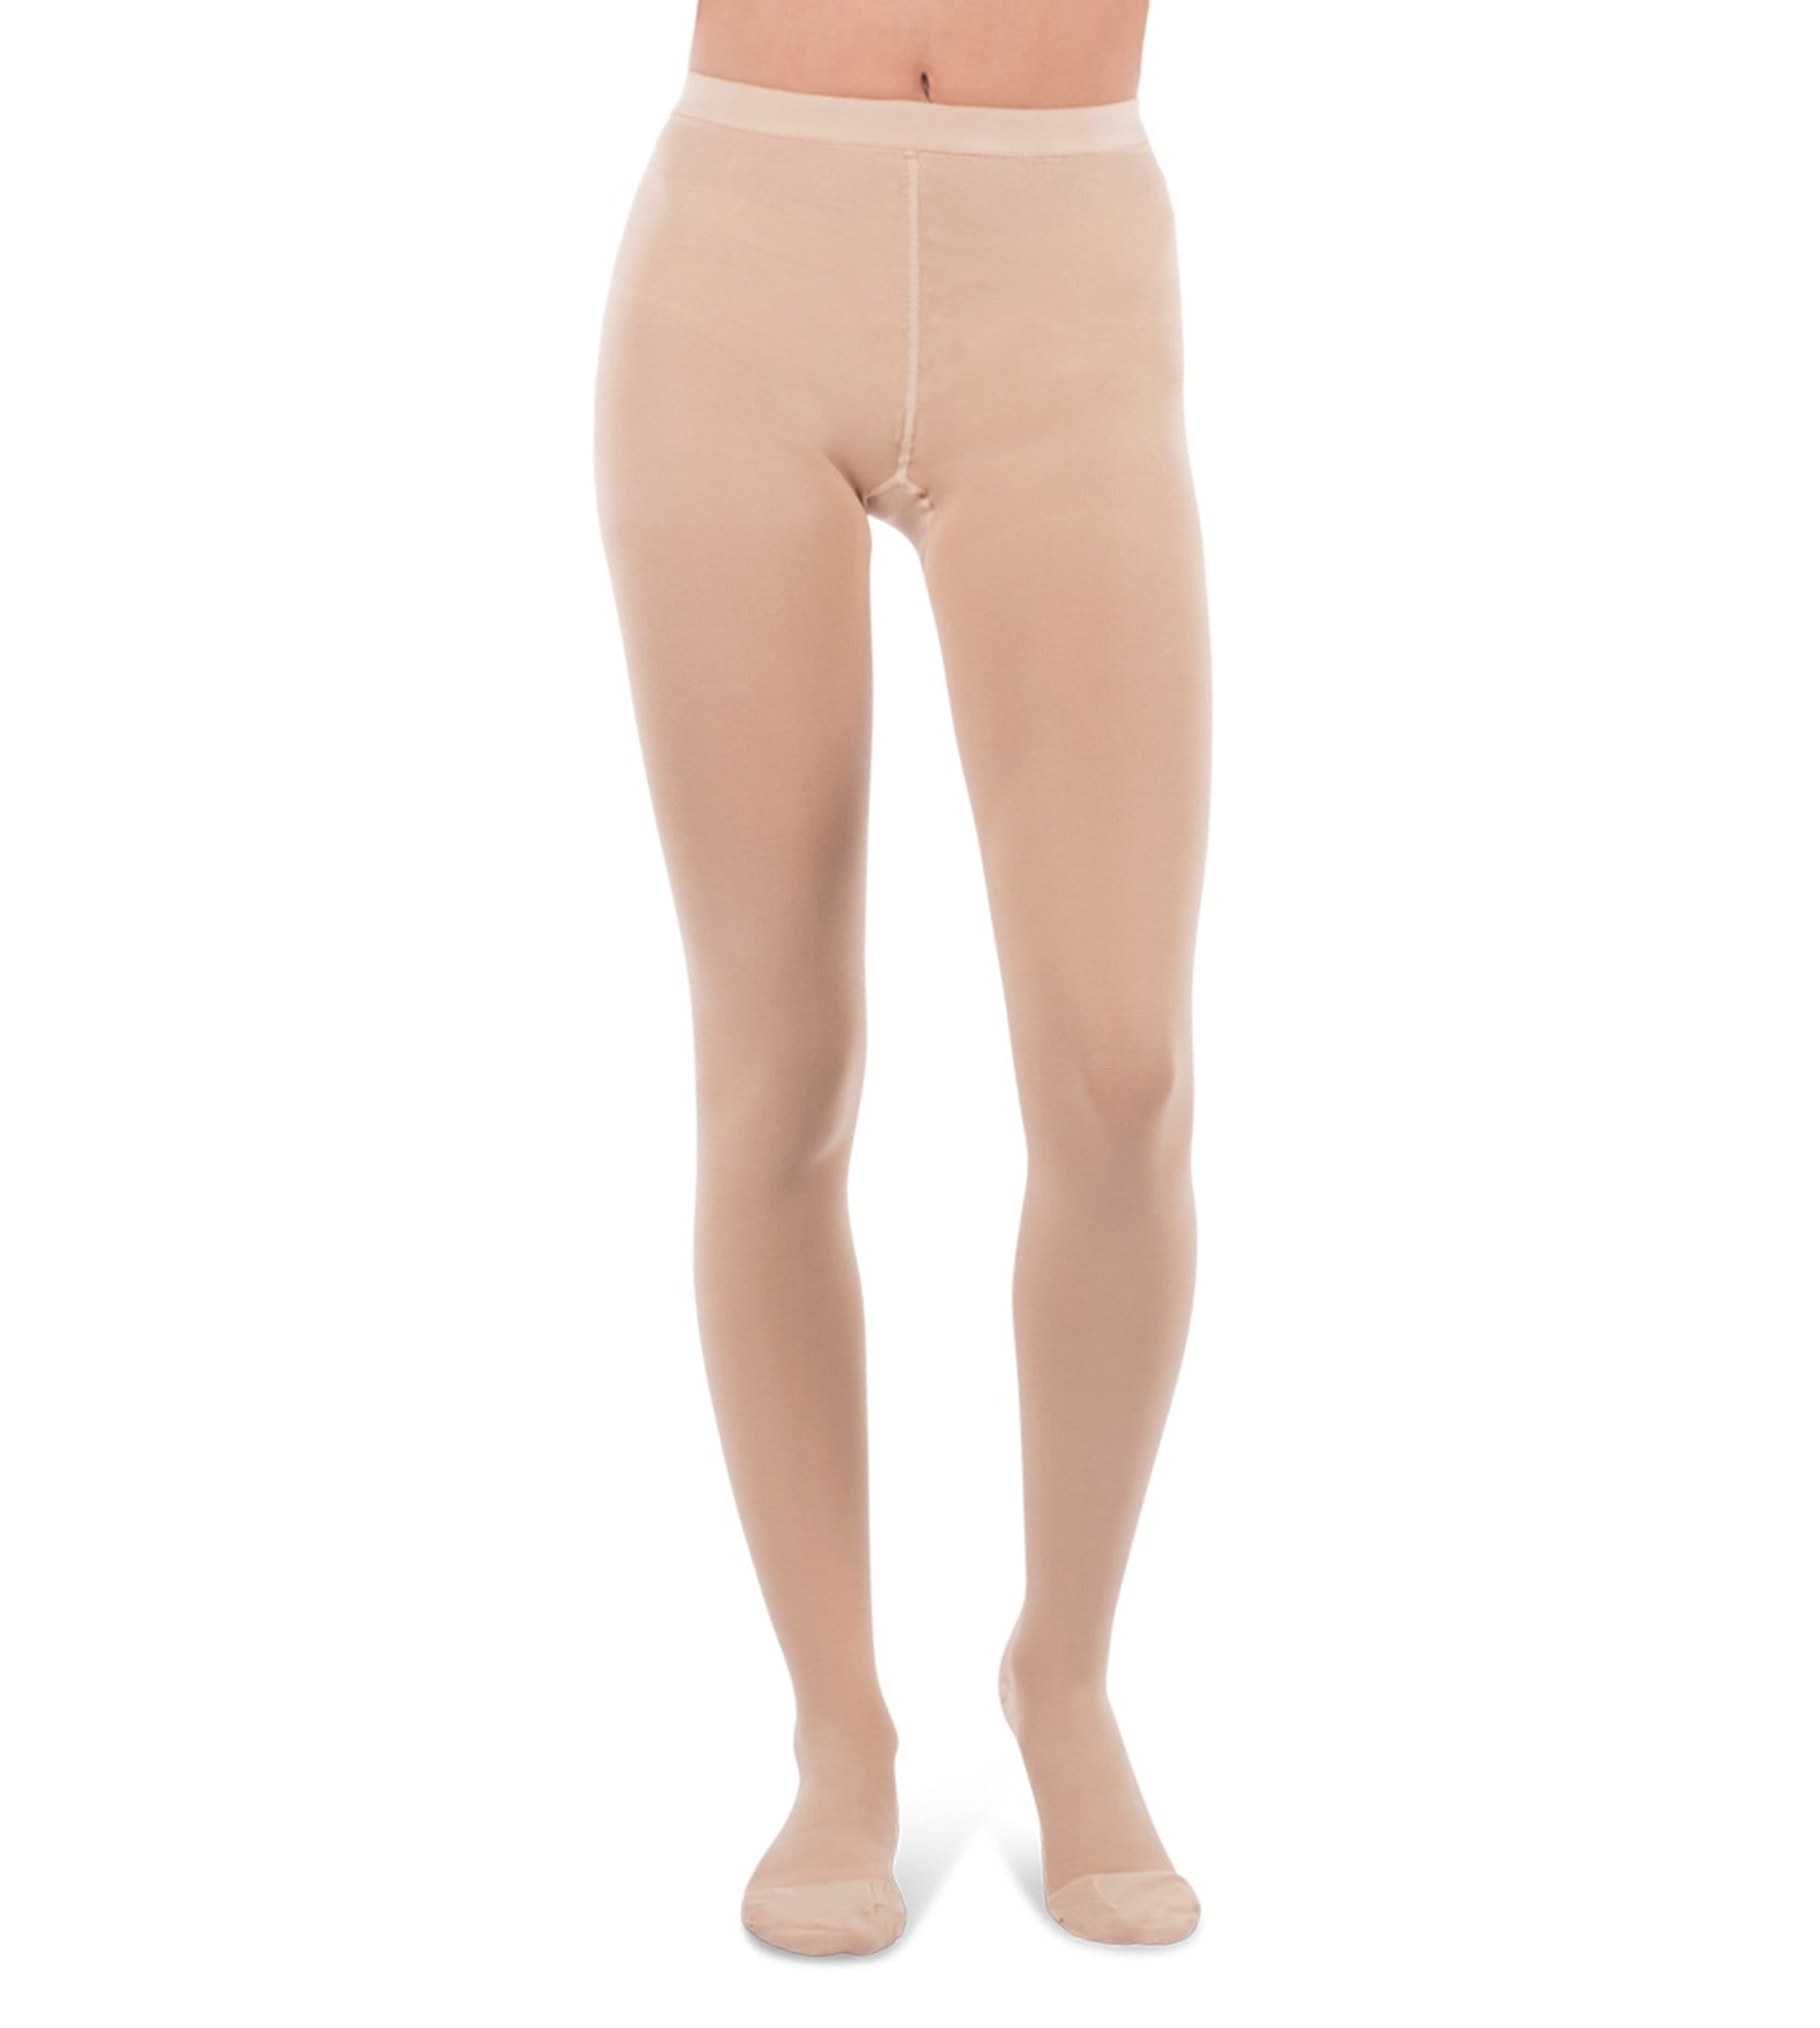 Womens Compression Pantyhose, 20-30mmHg Surgical Weight Closed Toe, Petite Short 272